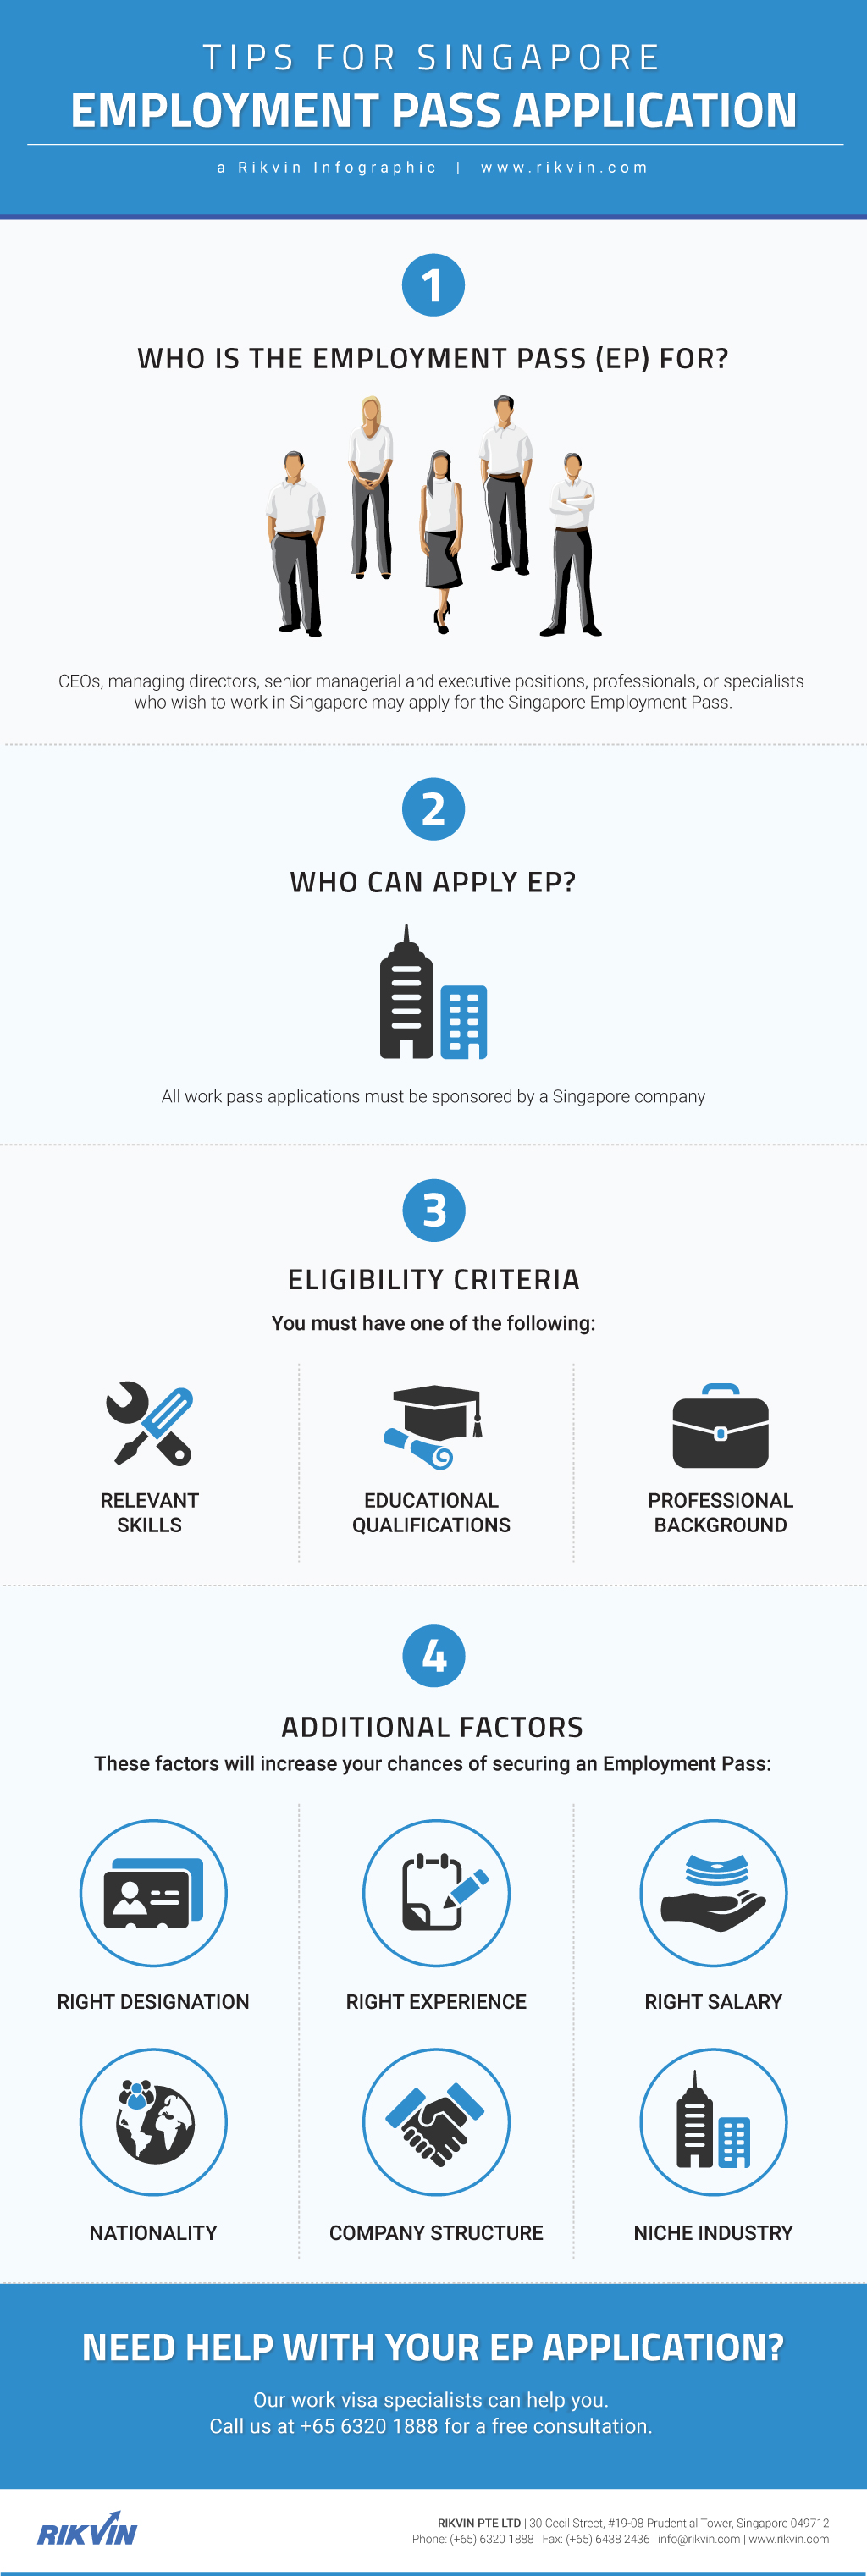 singapore employment pass application